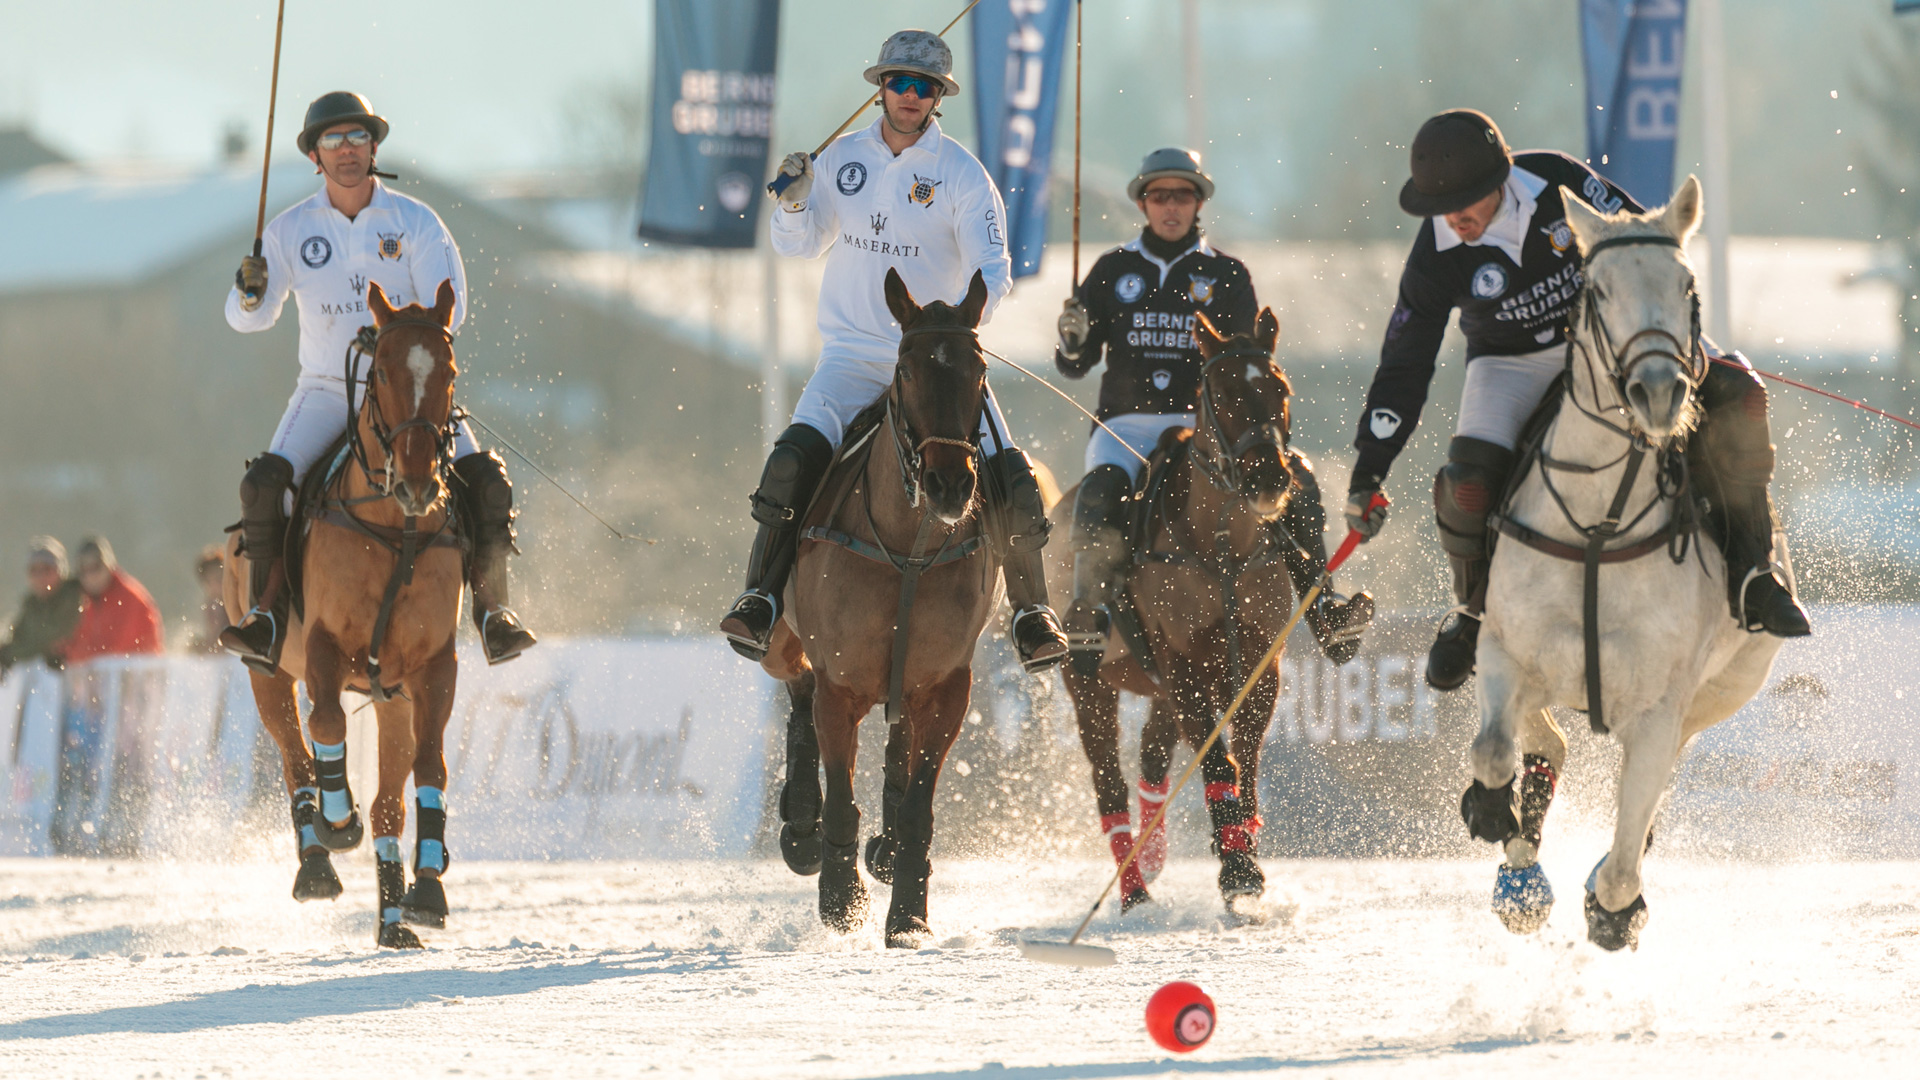 Maserati Sponsor des Snow Polo World Cup 2019